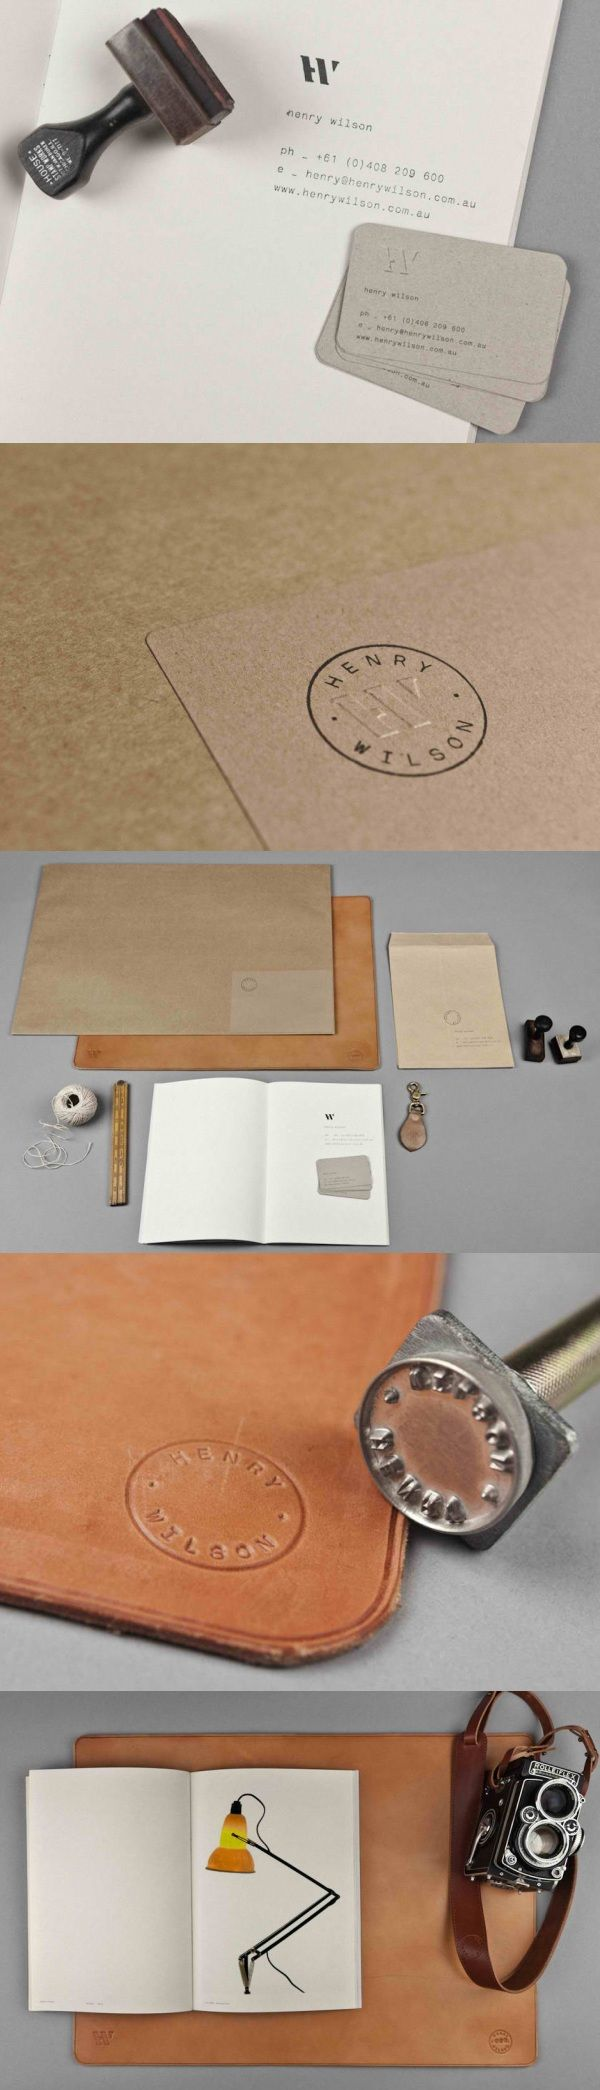 Henry Wilson Business Card & Brand Identity_I am all for the hand-made business cards. More people should definitely do this! Henry Wilson's gives us a wonderful example of how they do it with a simple ink stamp and nice cardstock. Brand Identity by Maud Design.